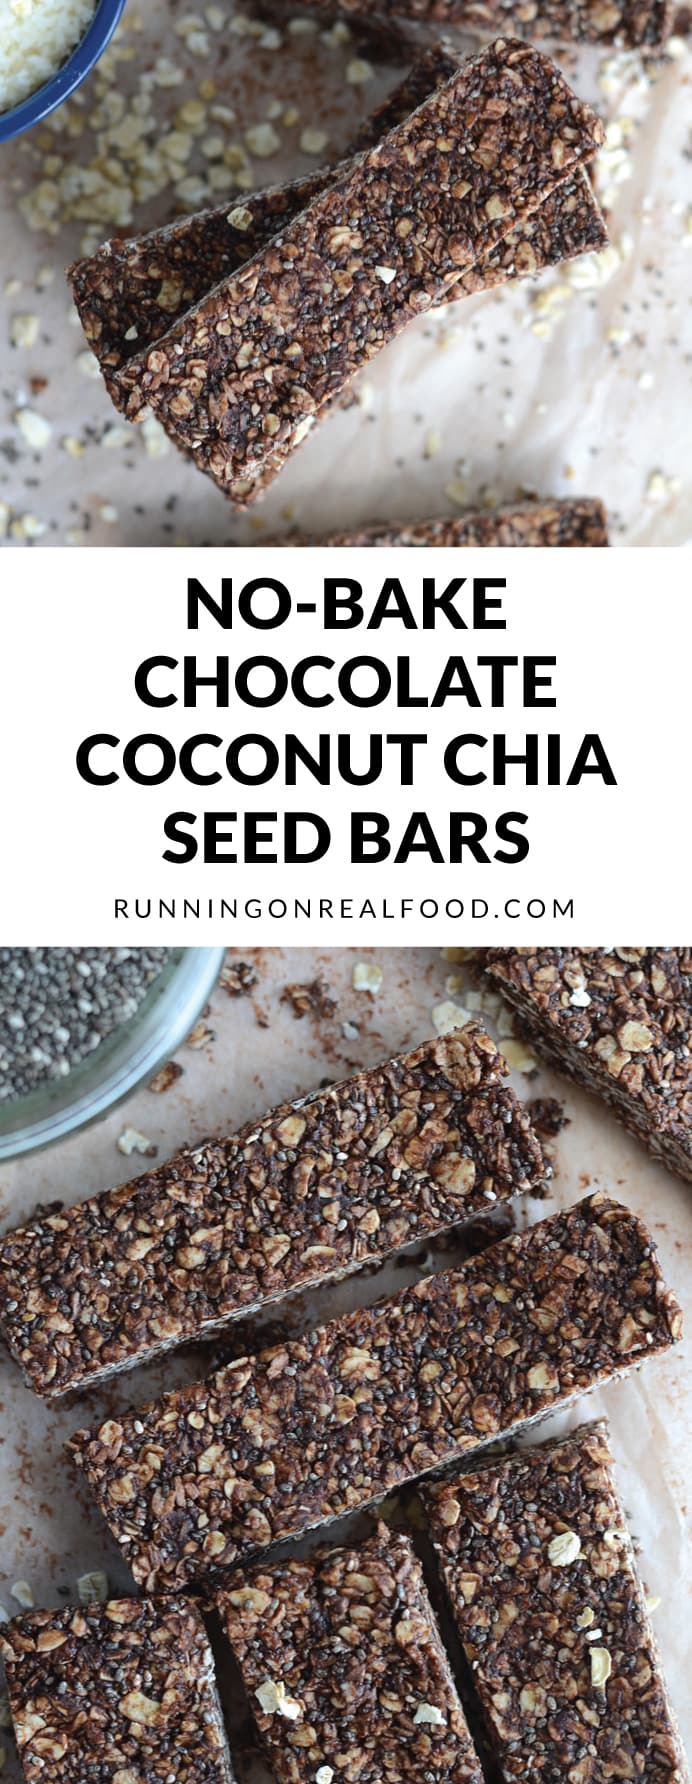 These Chocolate Coconut Chia Seed Bars are so easy to make, can be prepared in minutes with no blending or baking and only require a few ingredients. Vegan, gluten-free, no refined sugar.